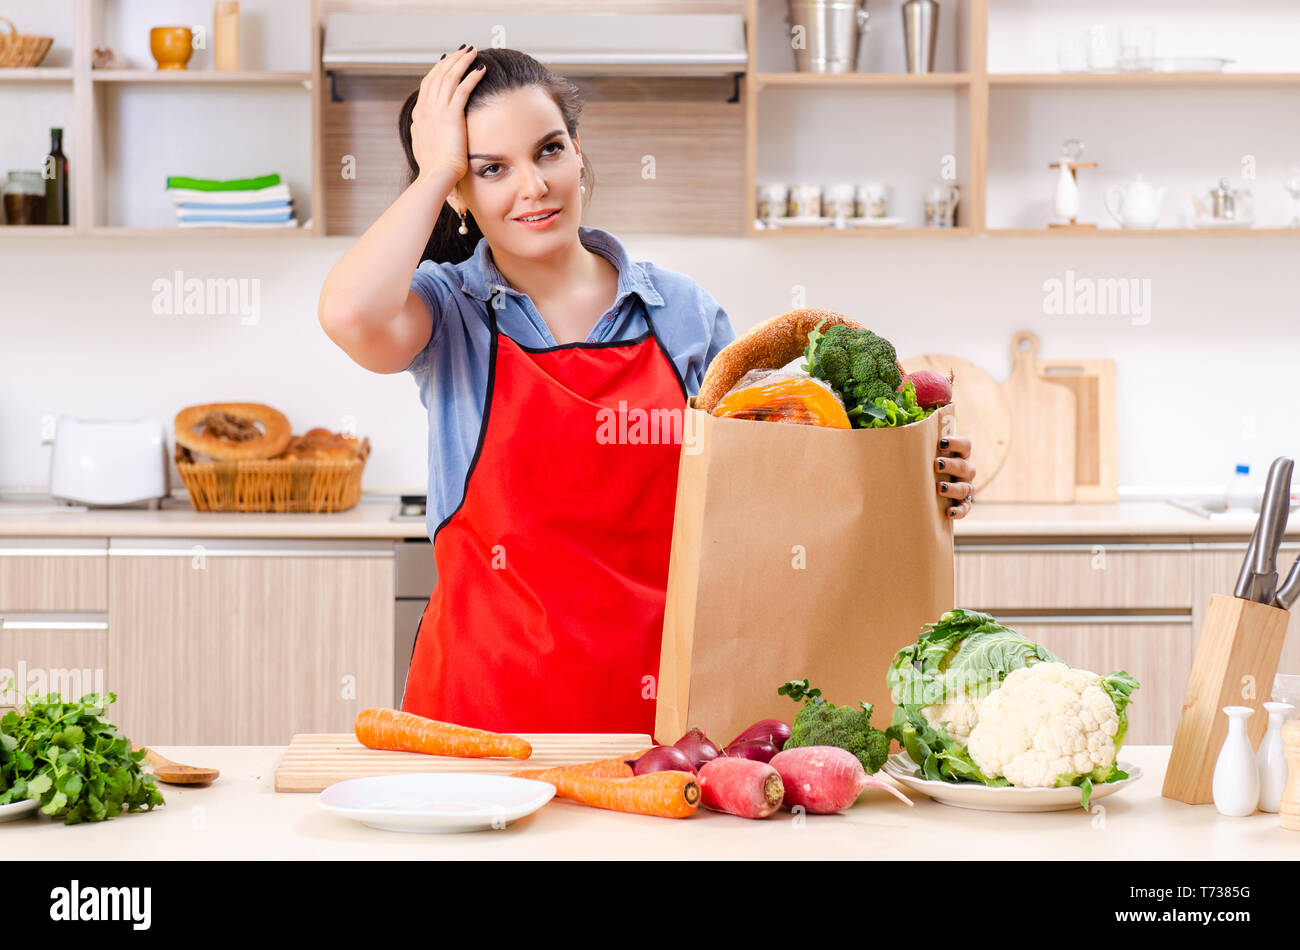 Young woman with vegetables in the kitchen - Stock Image